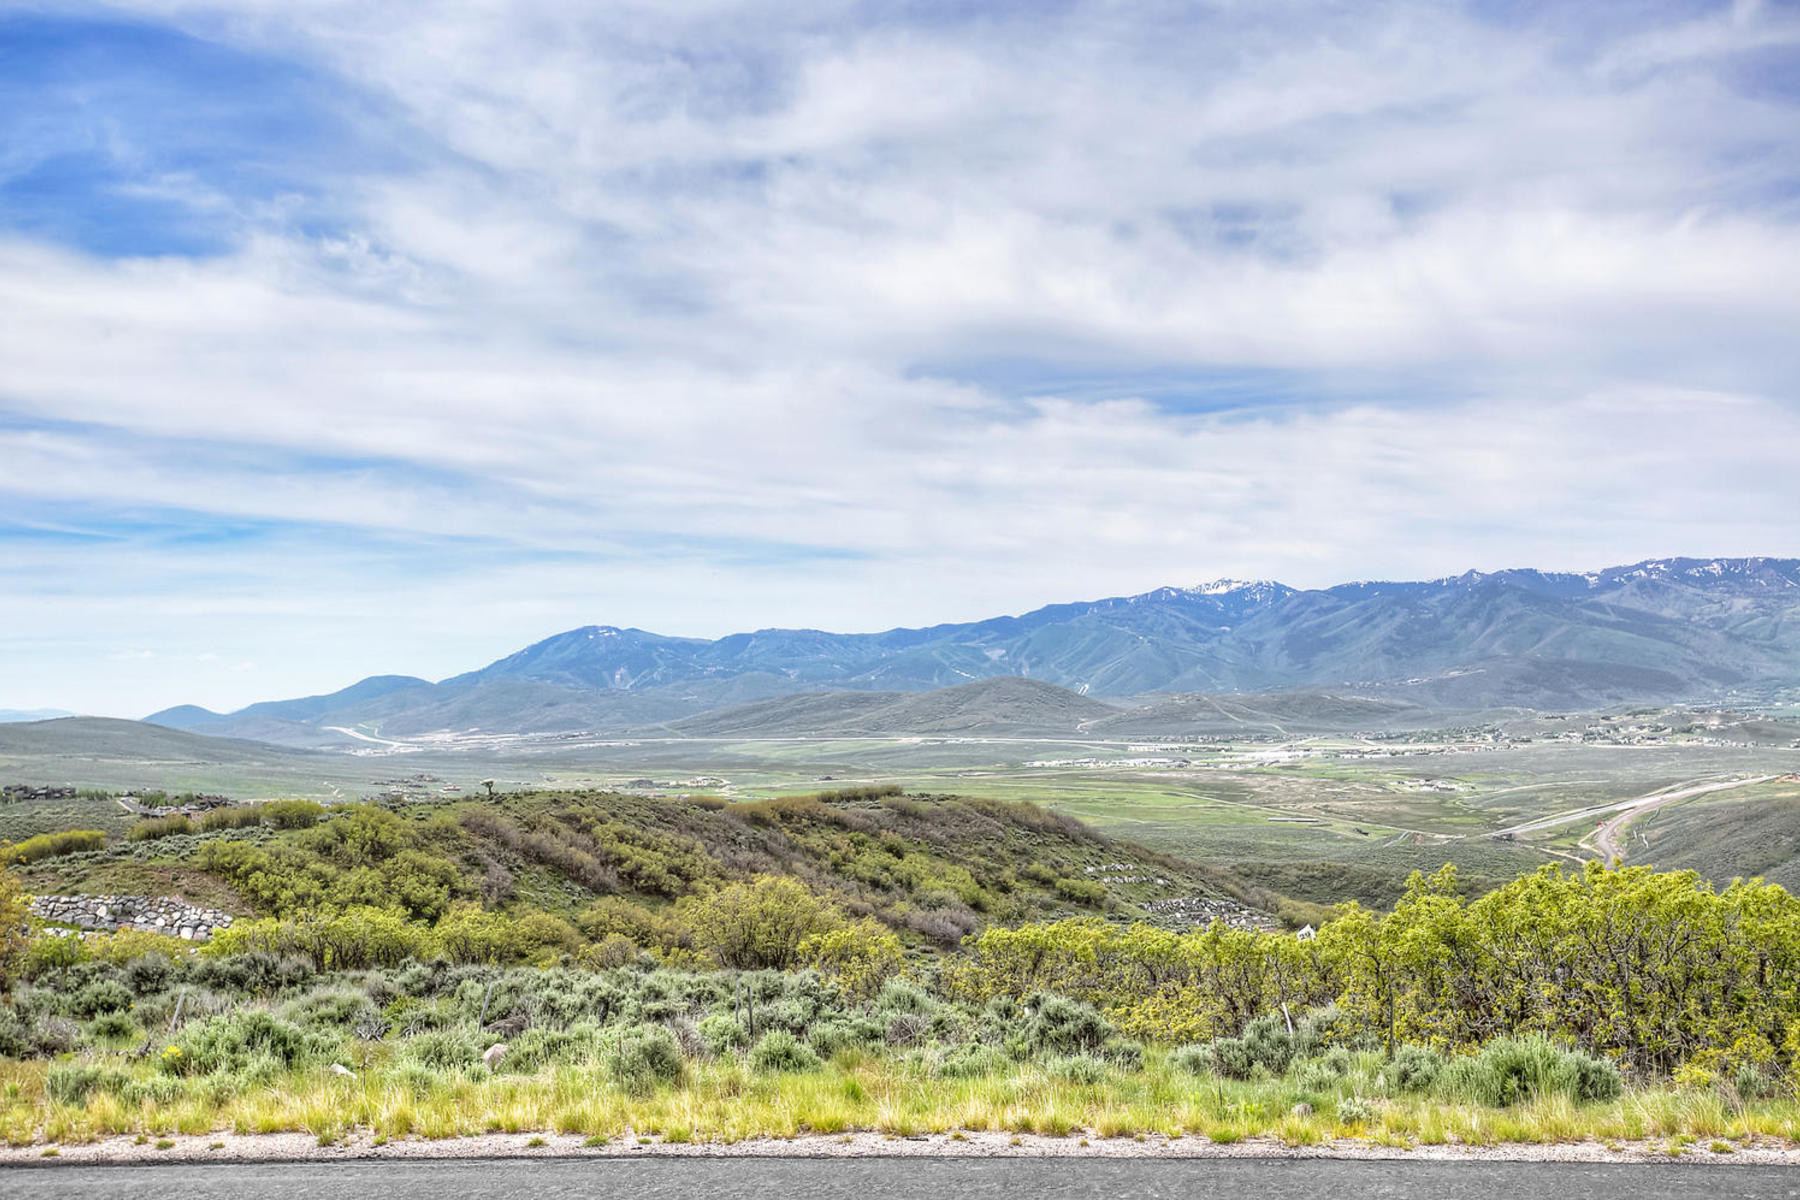 Terreno per Vendita alle ore Remington Cabin Homesite With Phenomenal Views To Ski Resorts 8984 N Hidden Hill Lp Lot 4 Park City, Utah, 84098 Stati Uniti